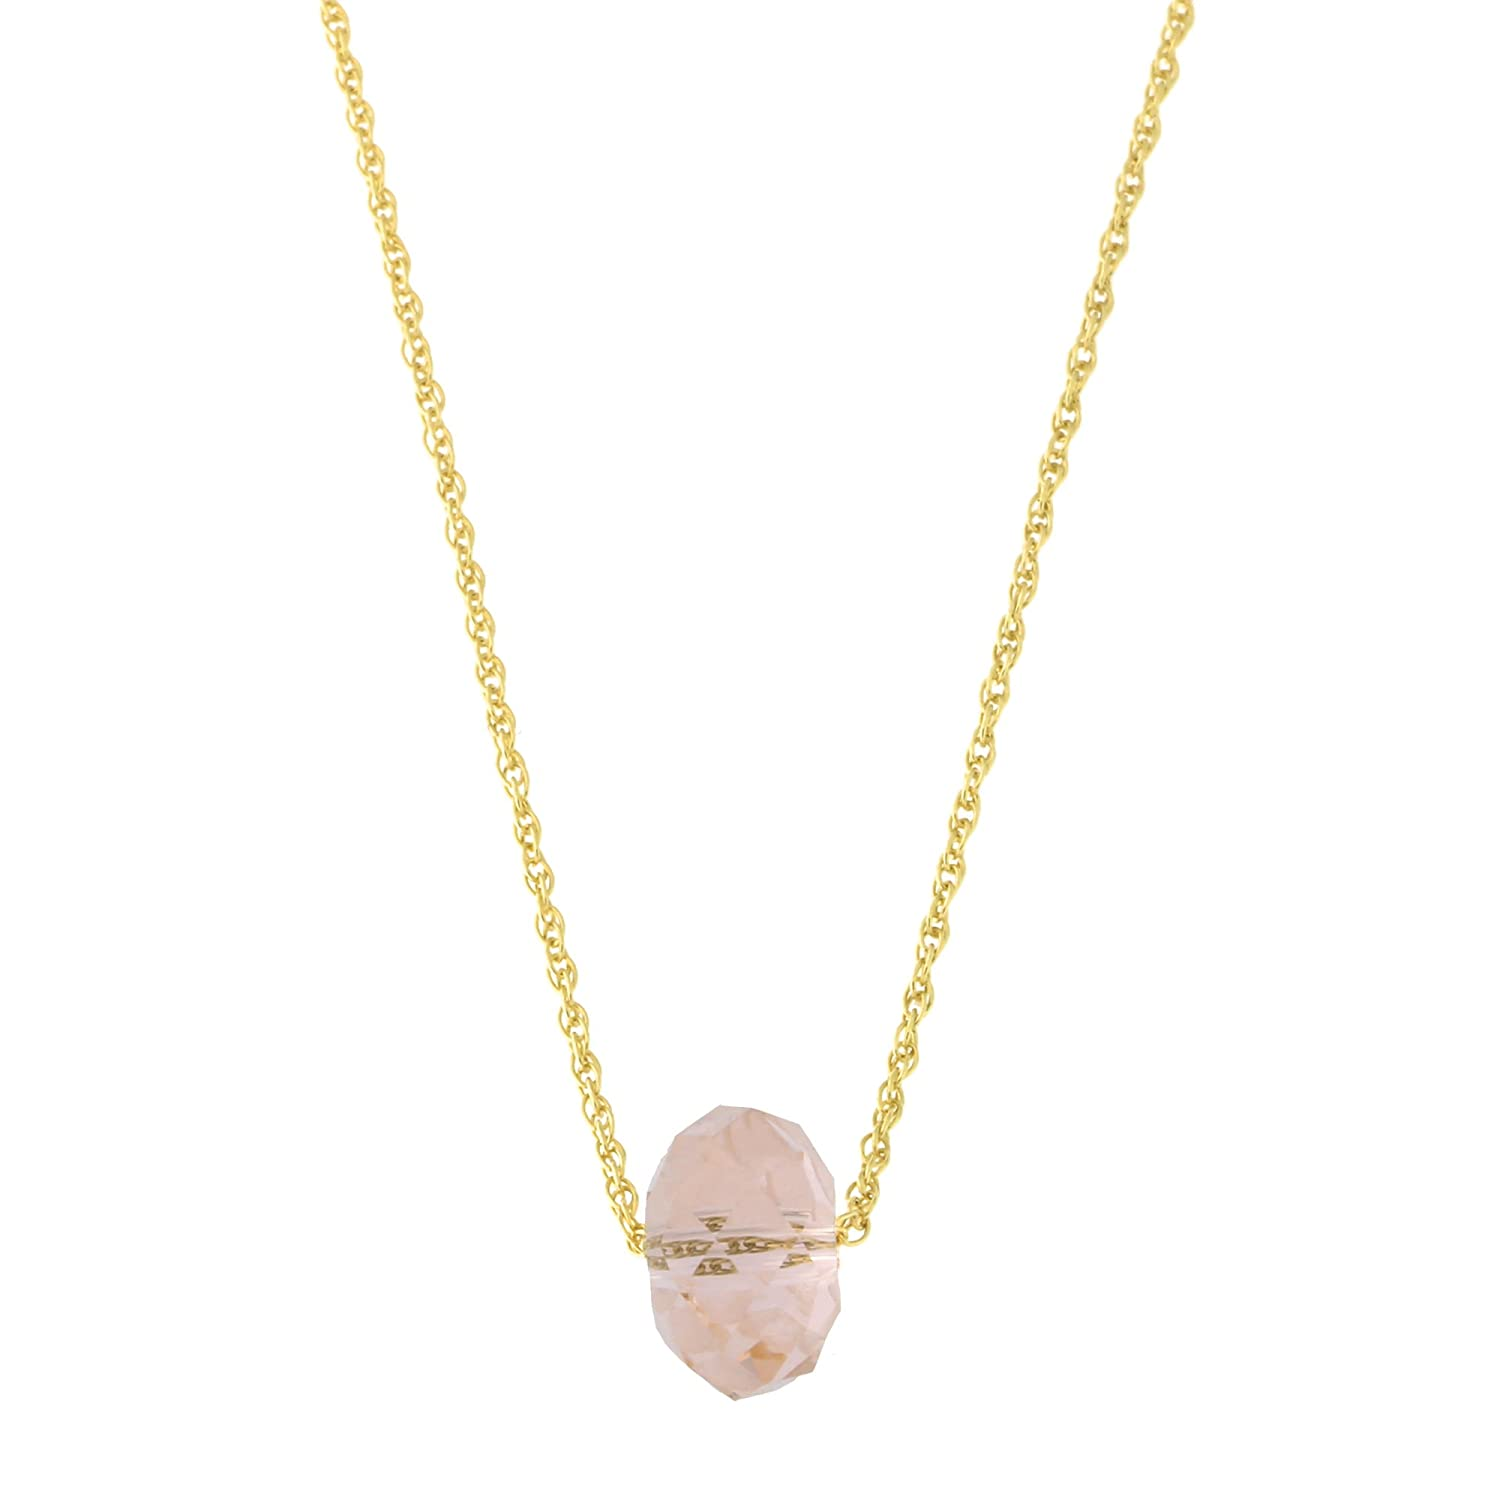 White or Rose Gold Rope Chain Light Pink Crystal Pendant Necklace 14k Yellow